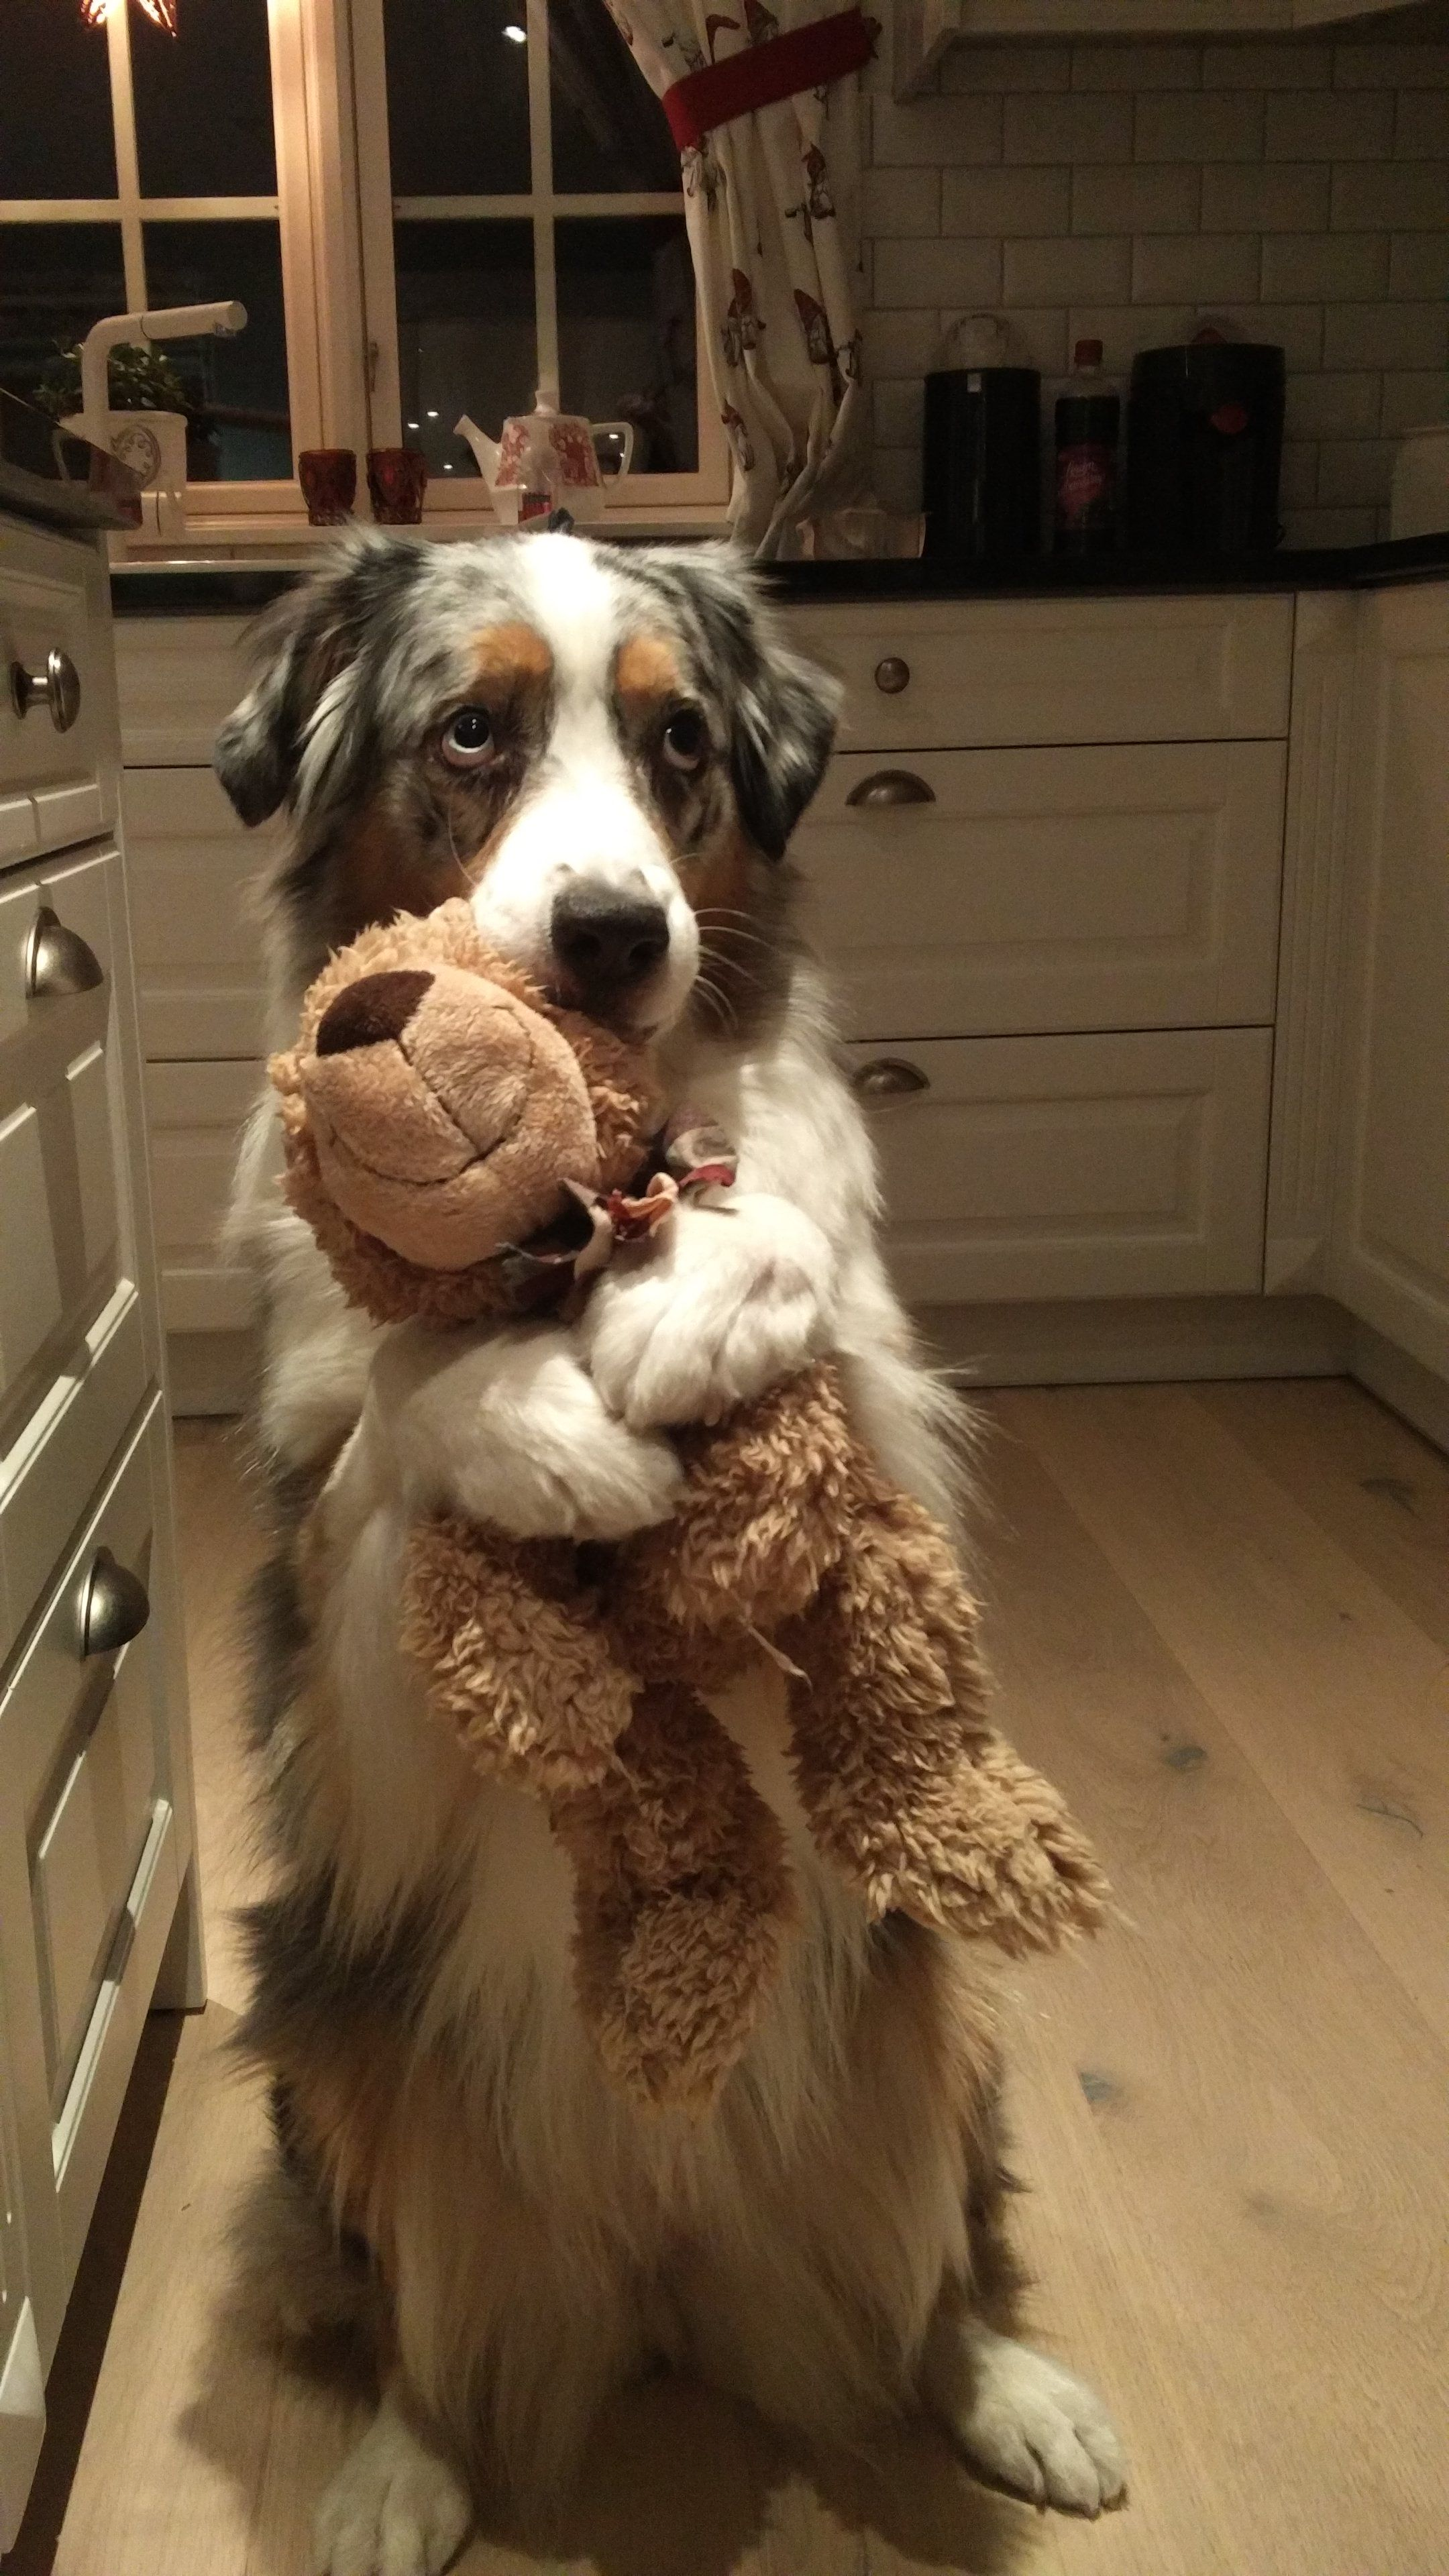 Dog hugging teddy. Not my image. Credit to http://imgur.com/user/YouThoughtThisWasAUsernameButItWasMeDio